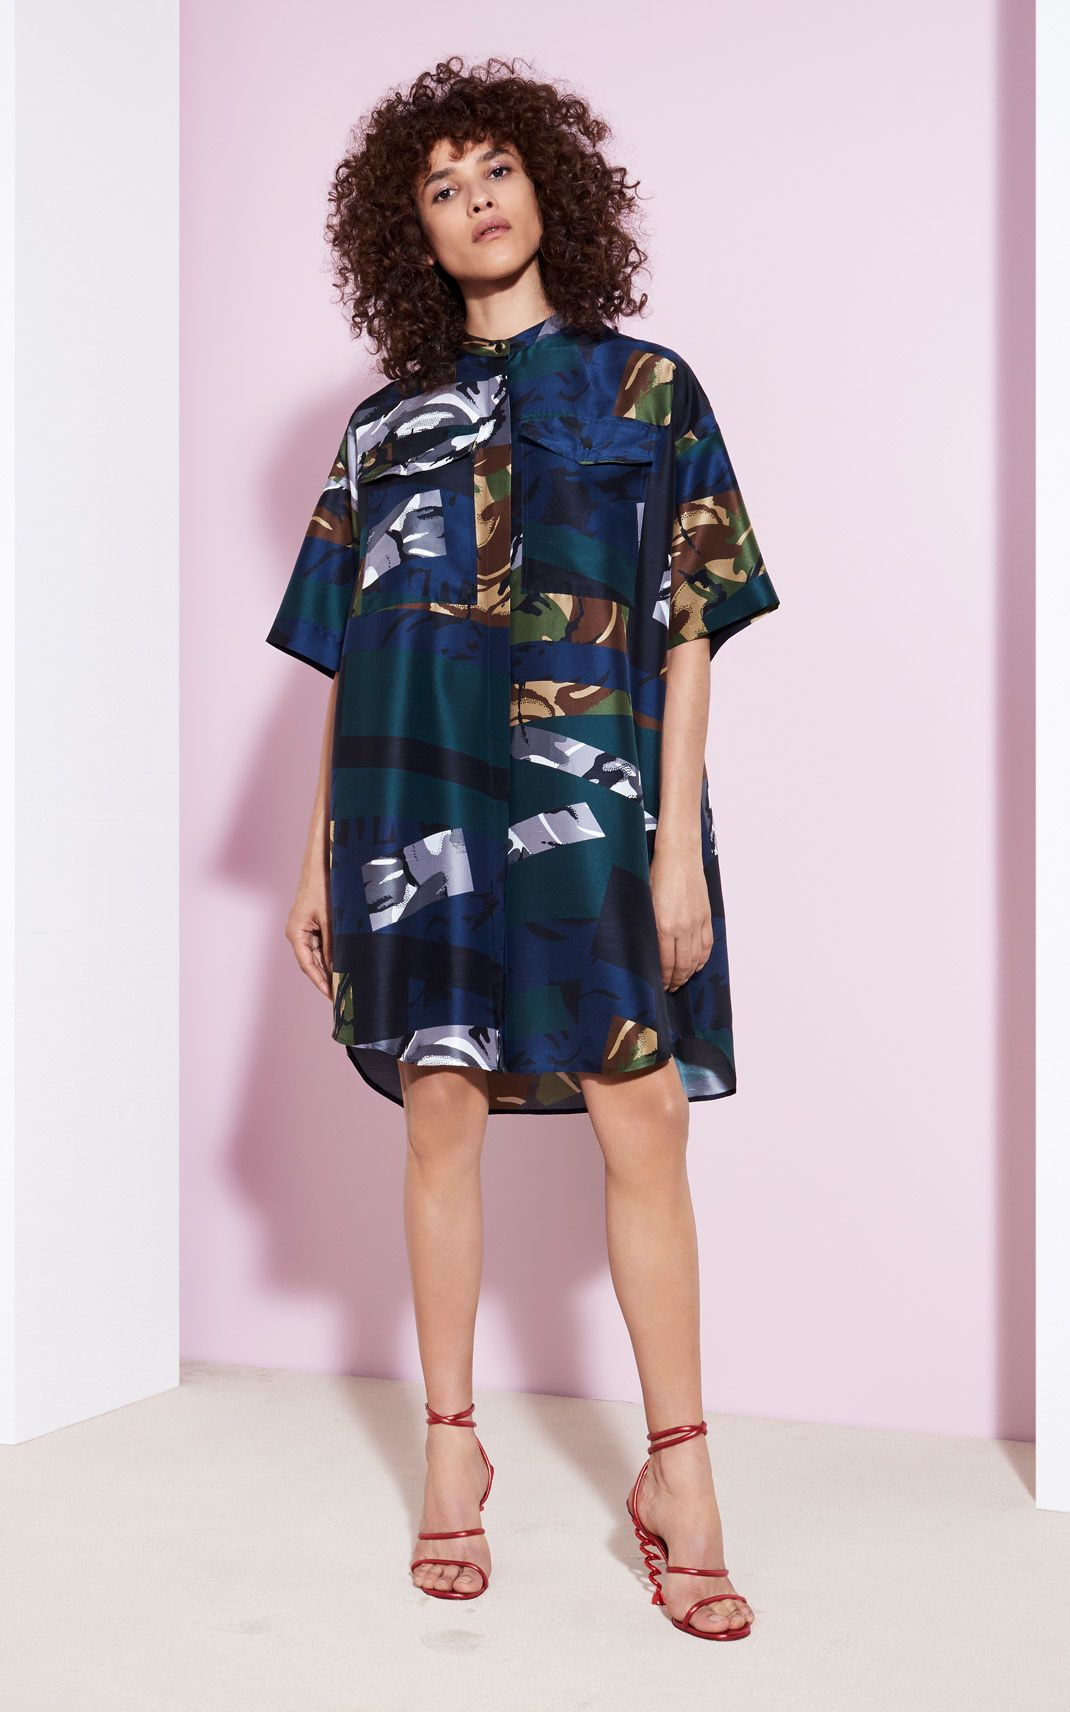 Broken Camo 39 Silk Dress For Kenzo Kenzo Com Dresses Silky Robe Kenzo Clothing